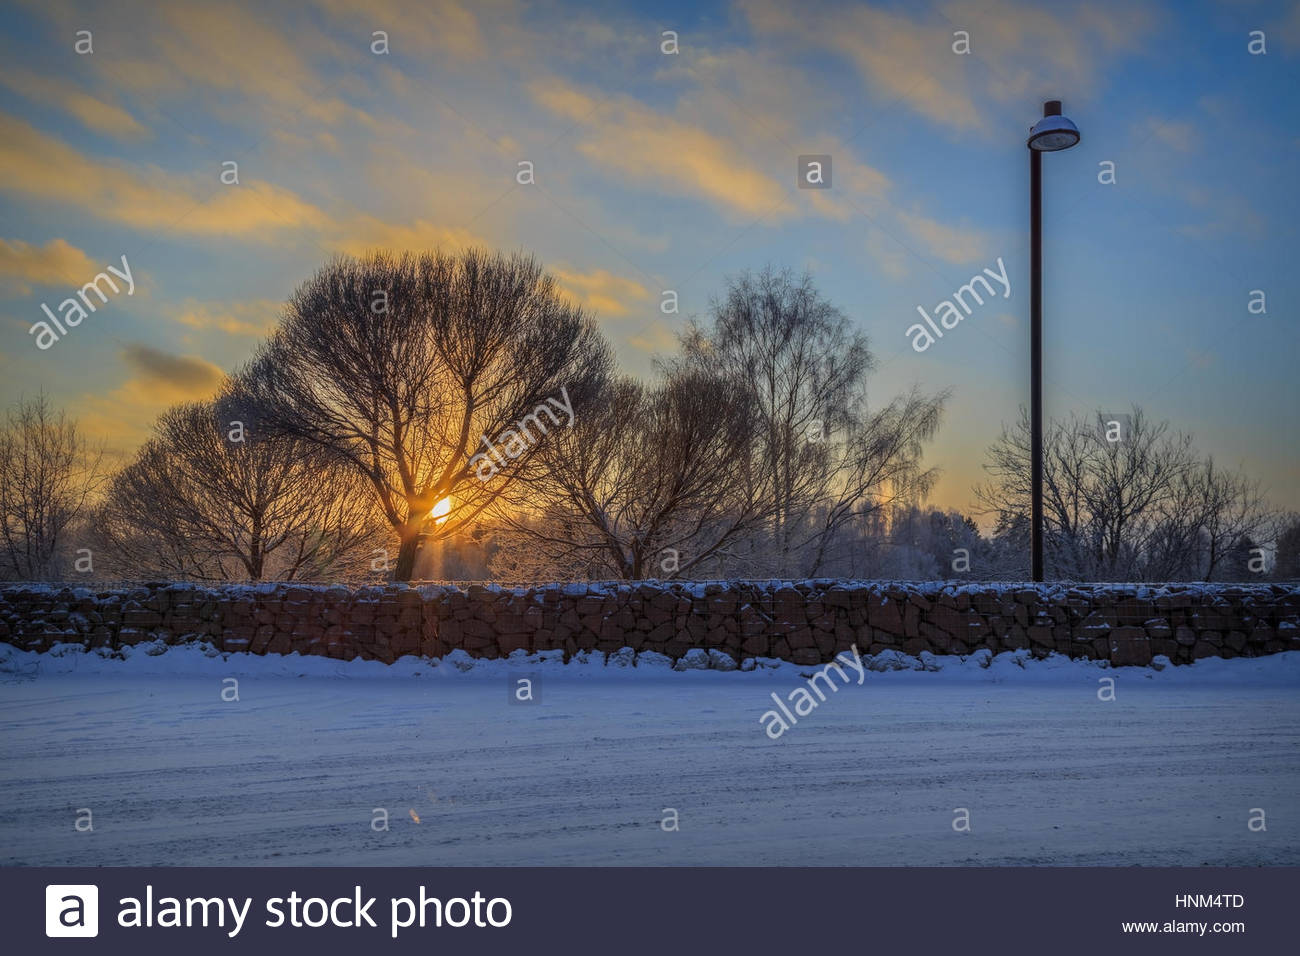 winter,street,  landscape with rock wall, lantarn and trees during sunset Stock Photo